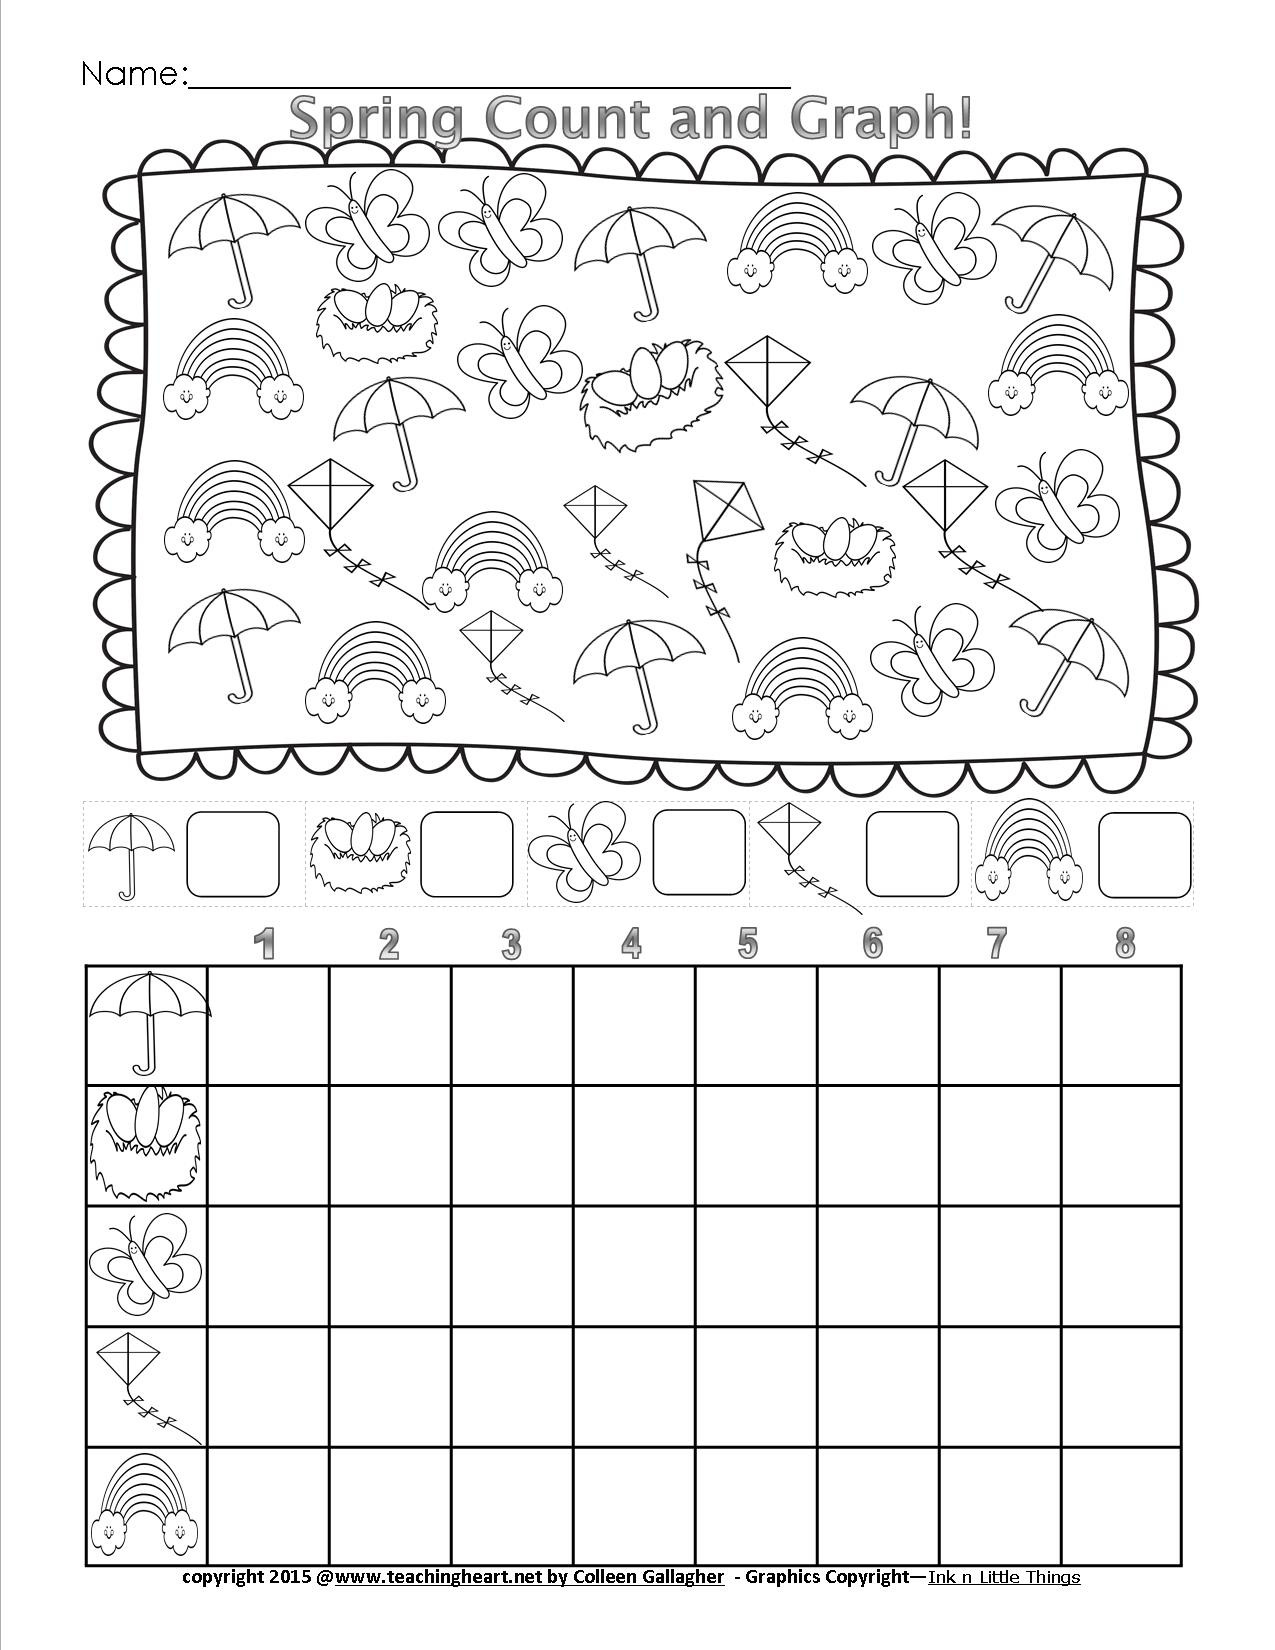 Line Graph Worksheet 5th Grade Spring Count and Graph Free Teaching Heart Blog Graphing